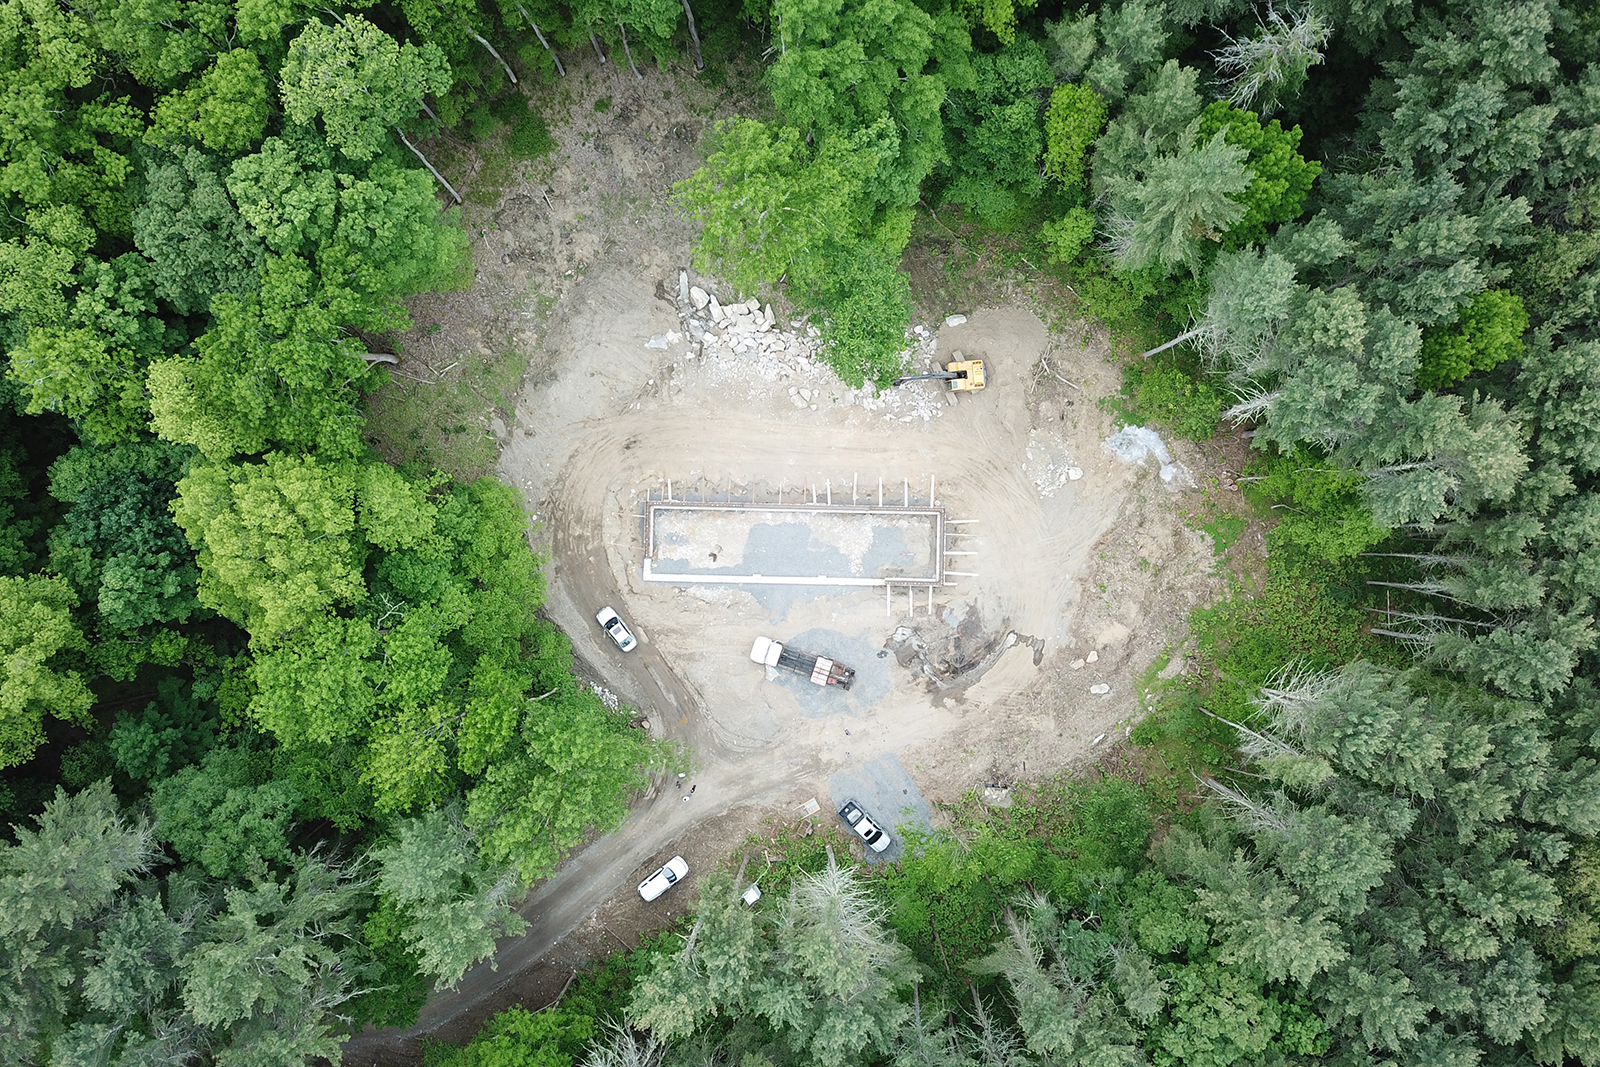 06-re4a-resolution-4-architecture-house-fernbrook-house-foundation-construction-update-DJI_0049.JPG